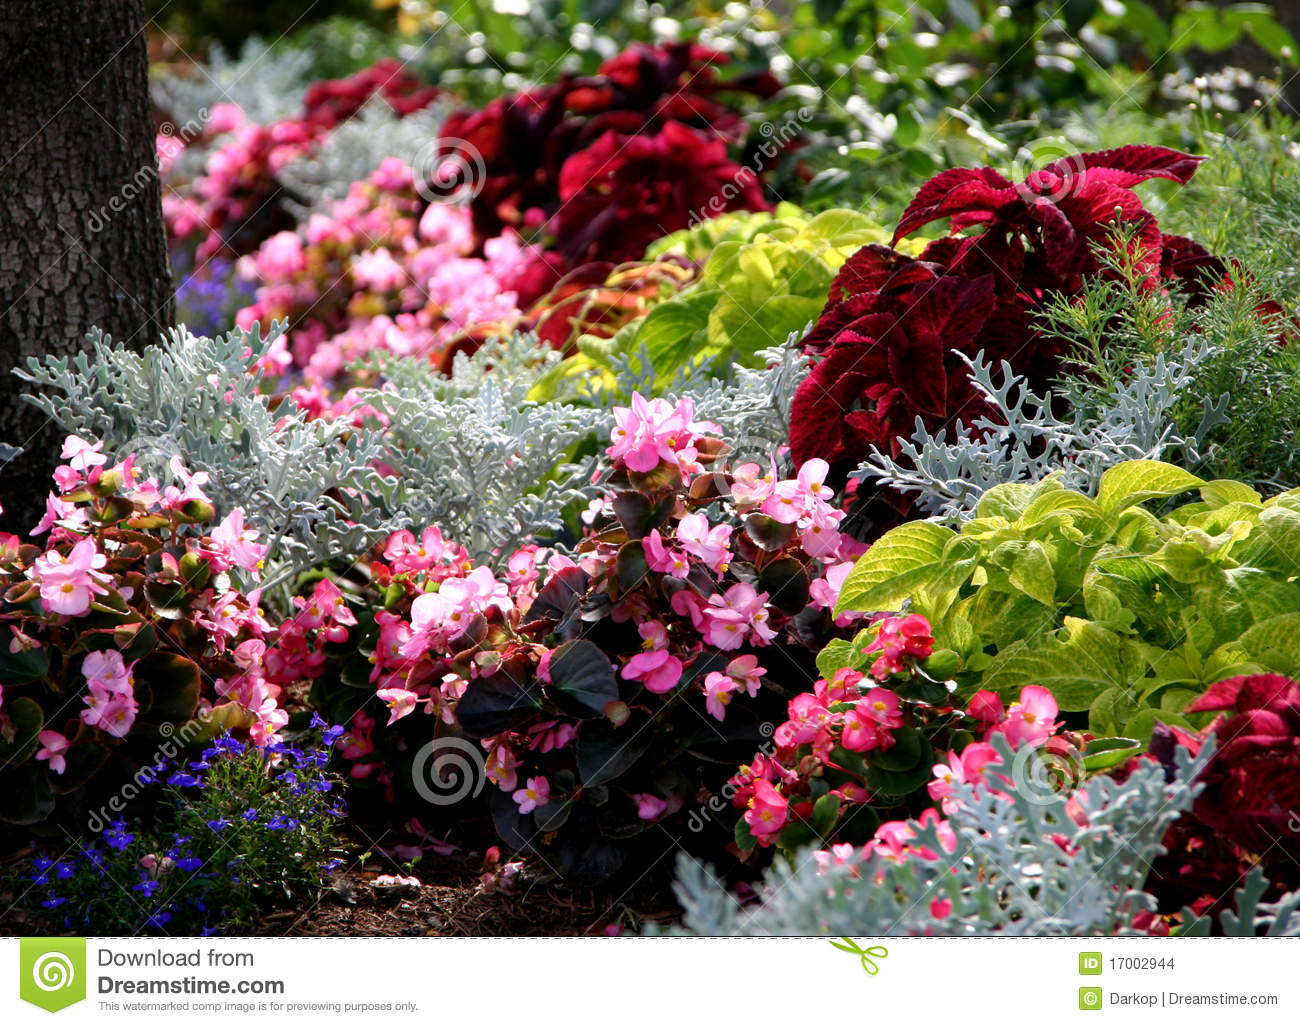 Annual summertime flowers bed